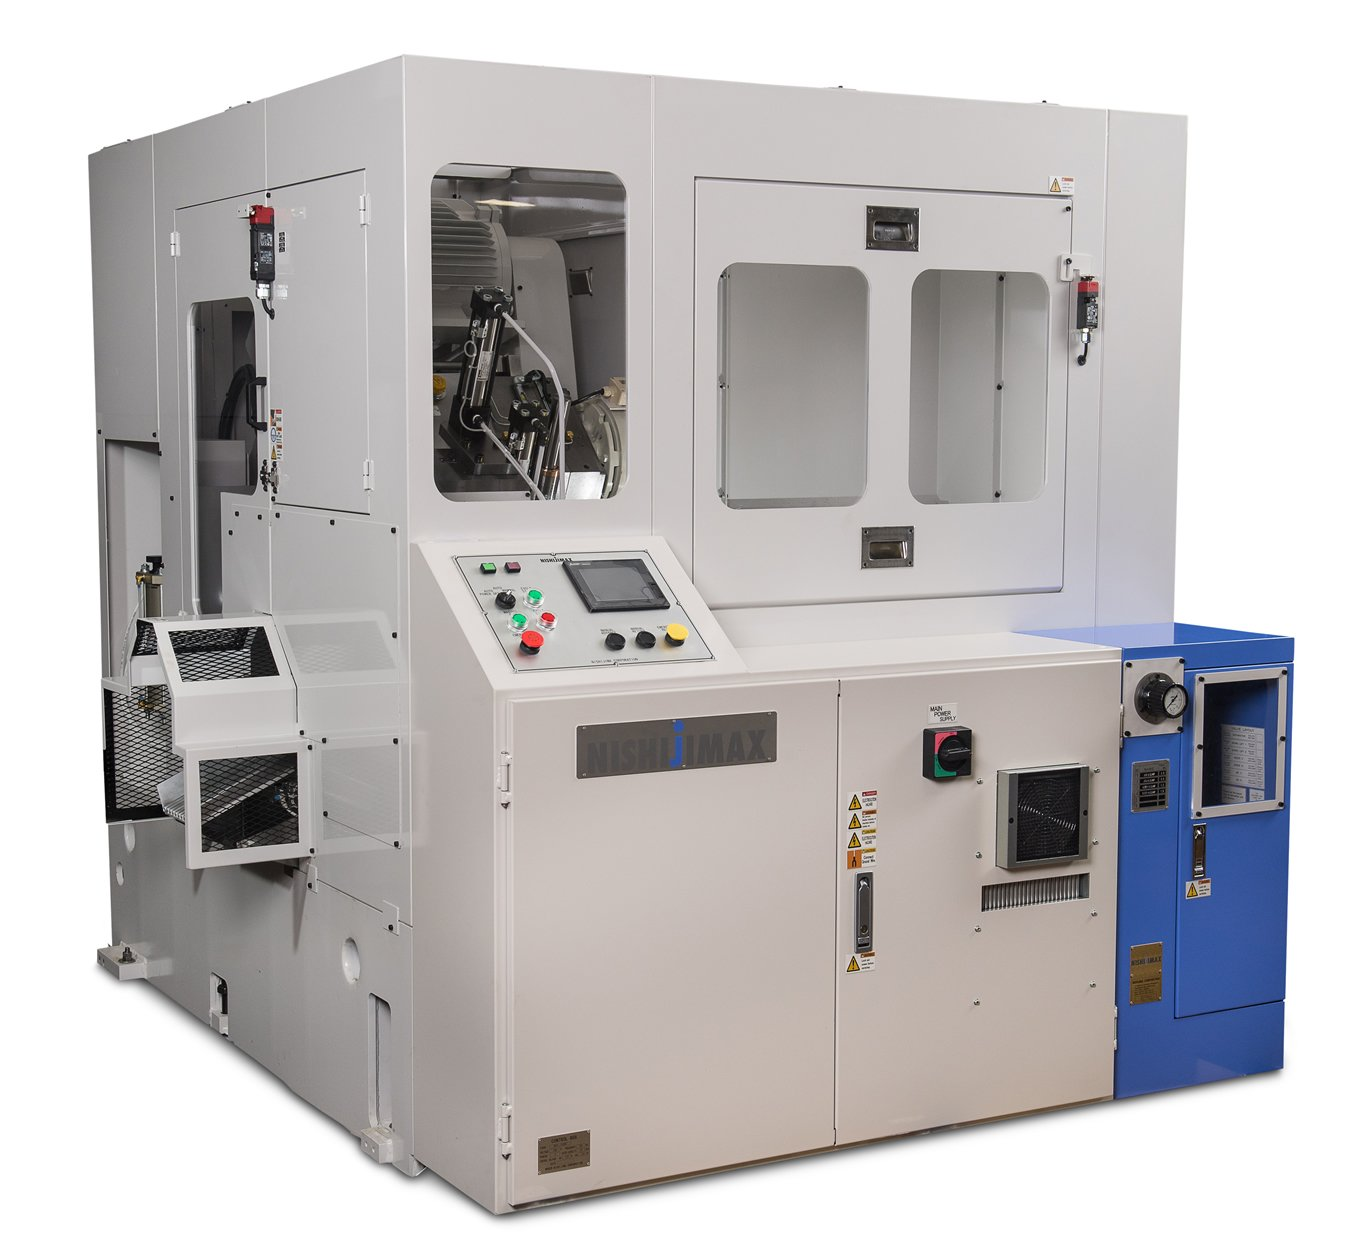 NHC-80 - 2-Axis CNC Sawing Machine